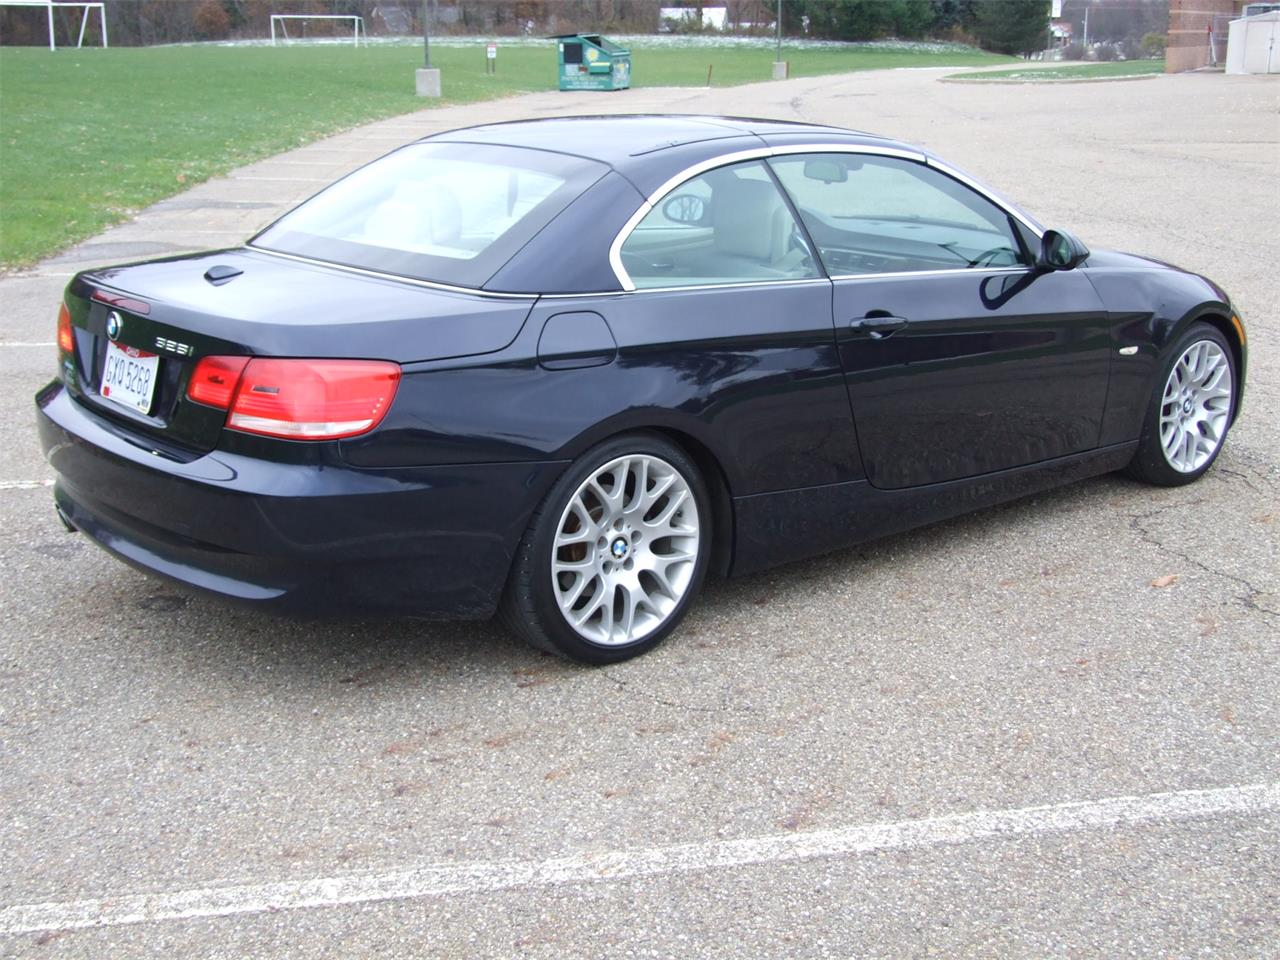 Large Picture of 2008 BMW 328i located in Ohio Offered by Auto Connection, Inc. - P1OU